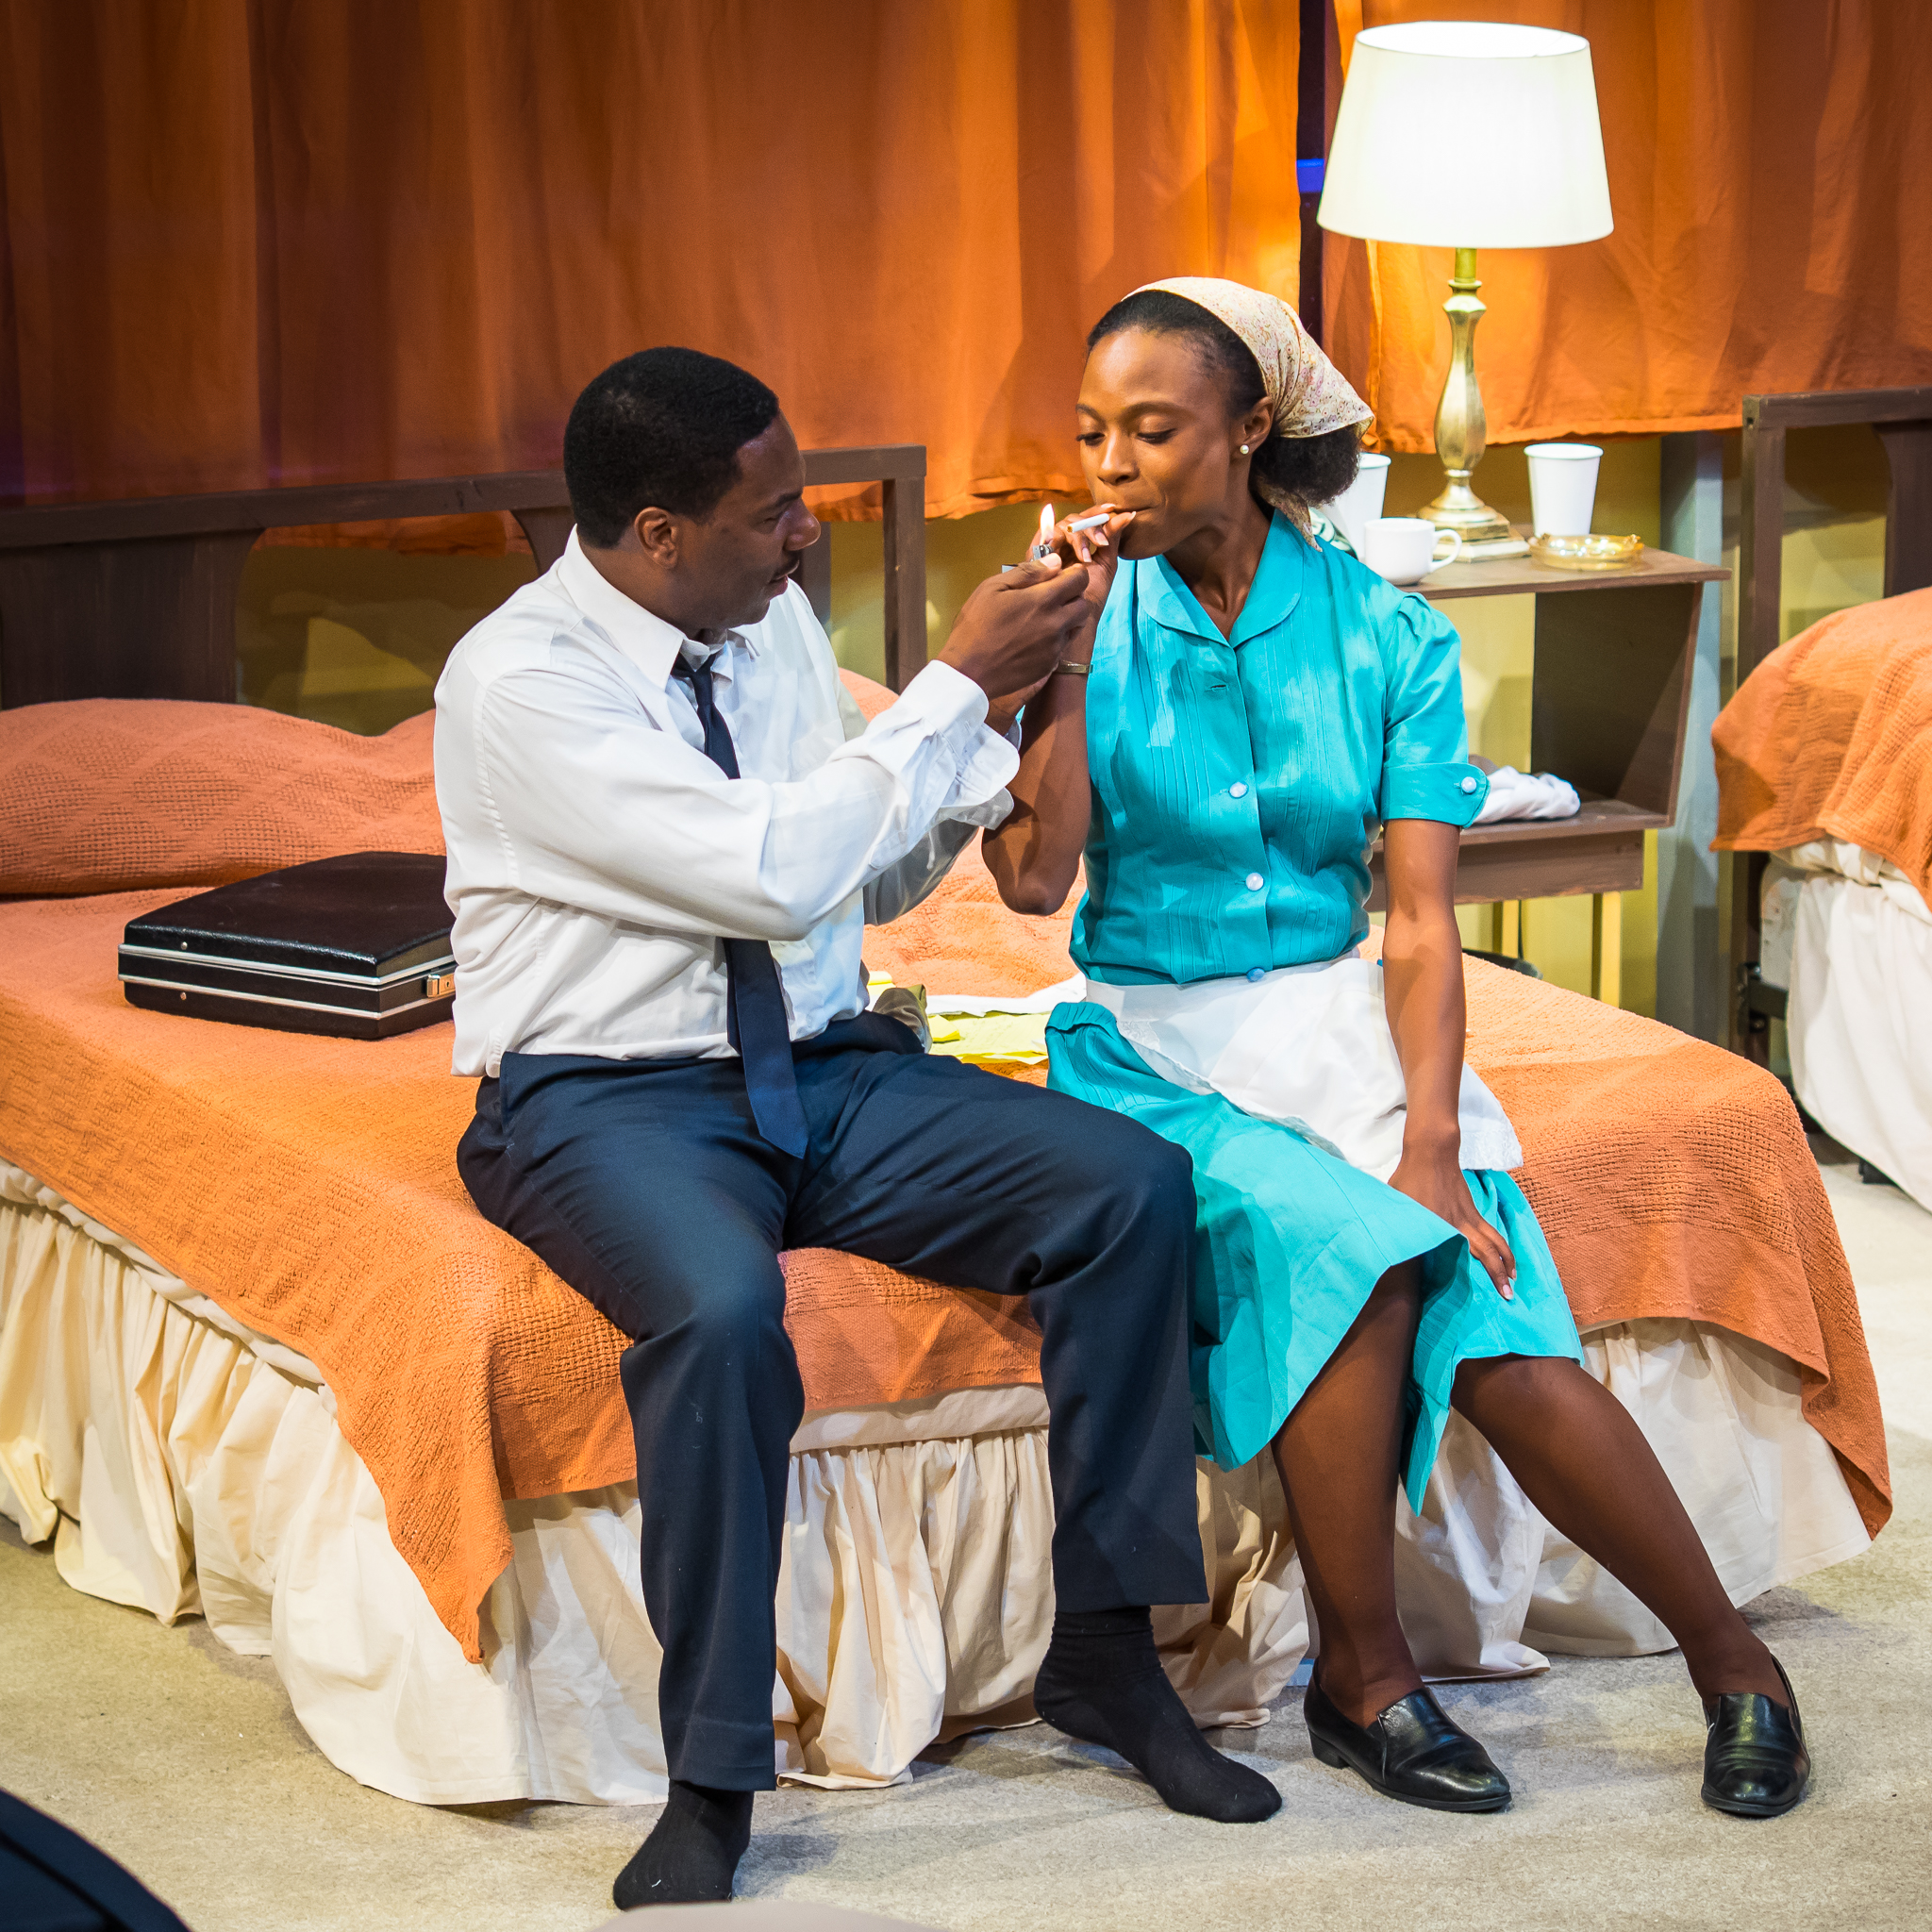 Dr. King offering (Reginald André Jackson ) to Camae (brianne a. hill)